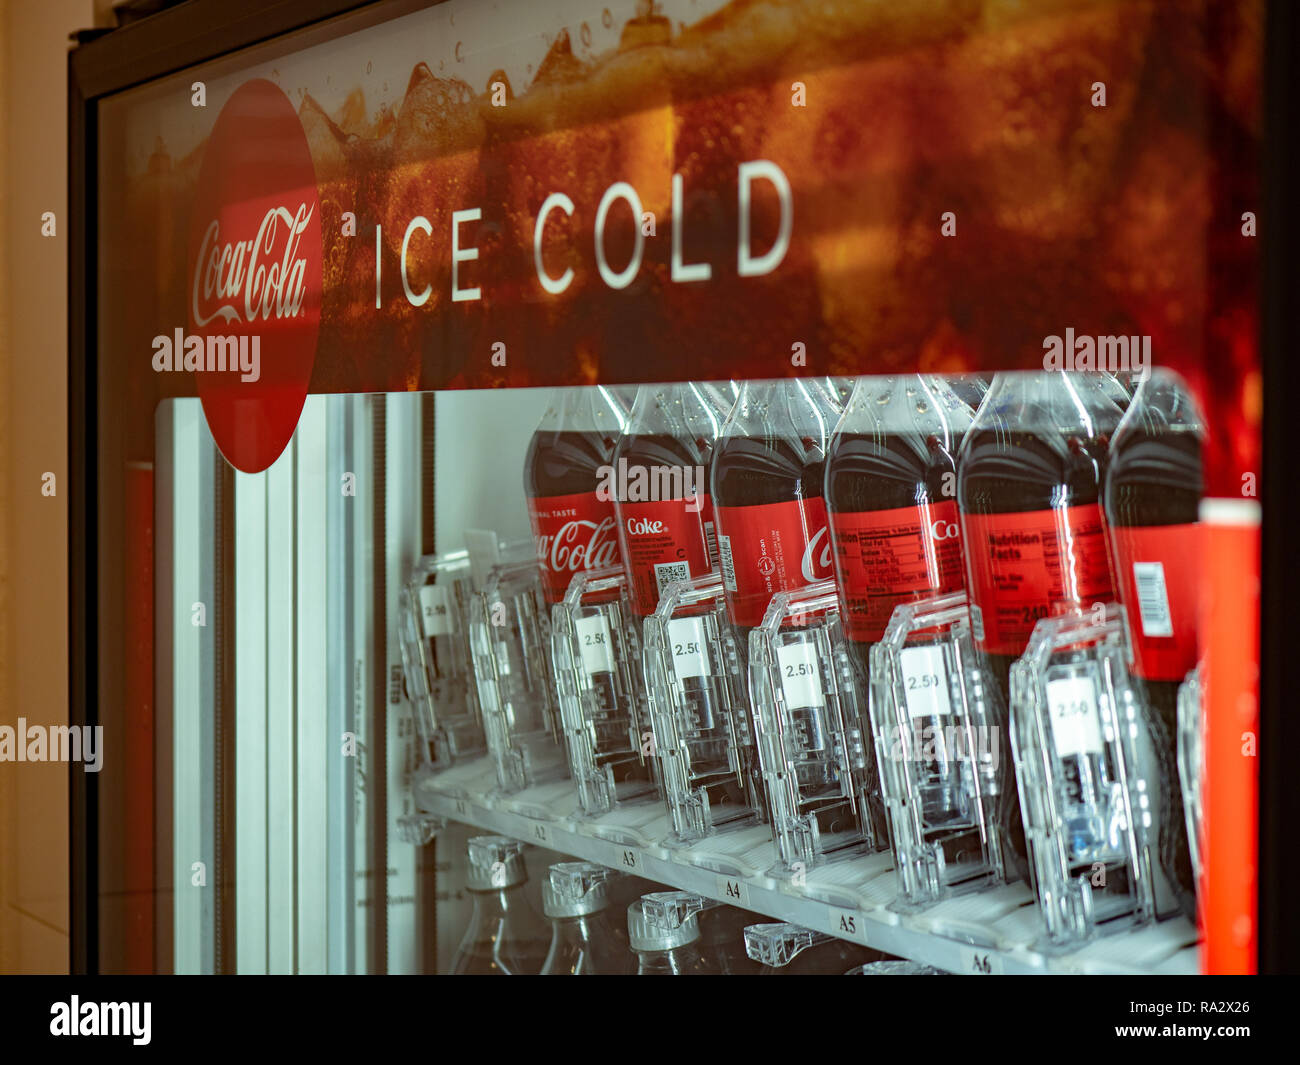 Coca Cola ice cold logo filled with bottles inside a vending machine - Stock Image